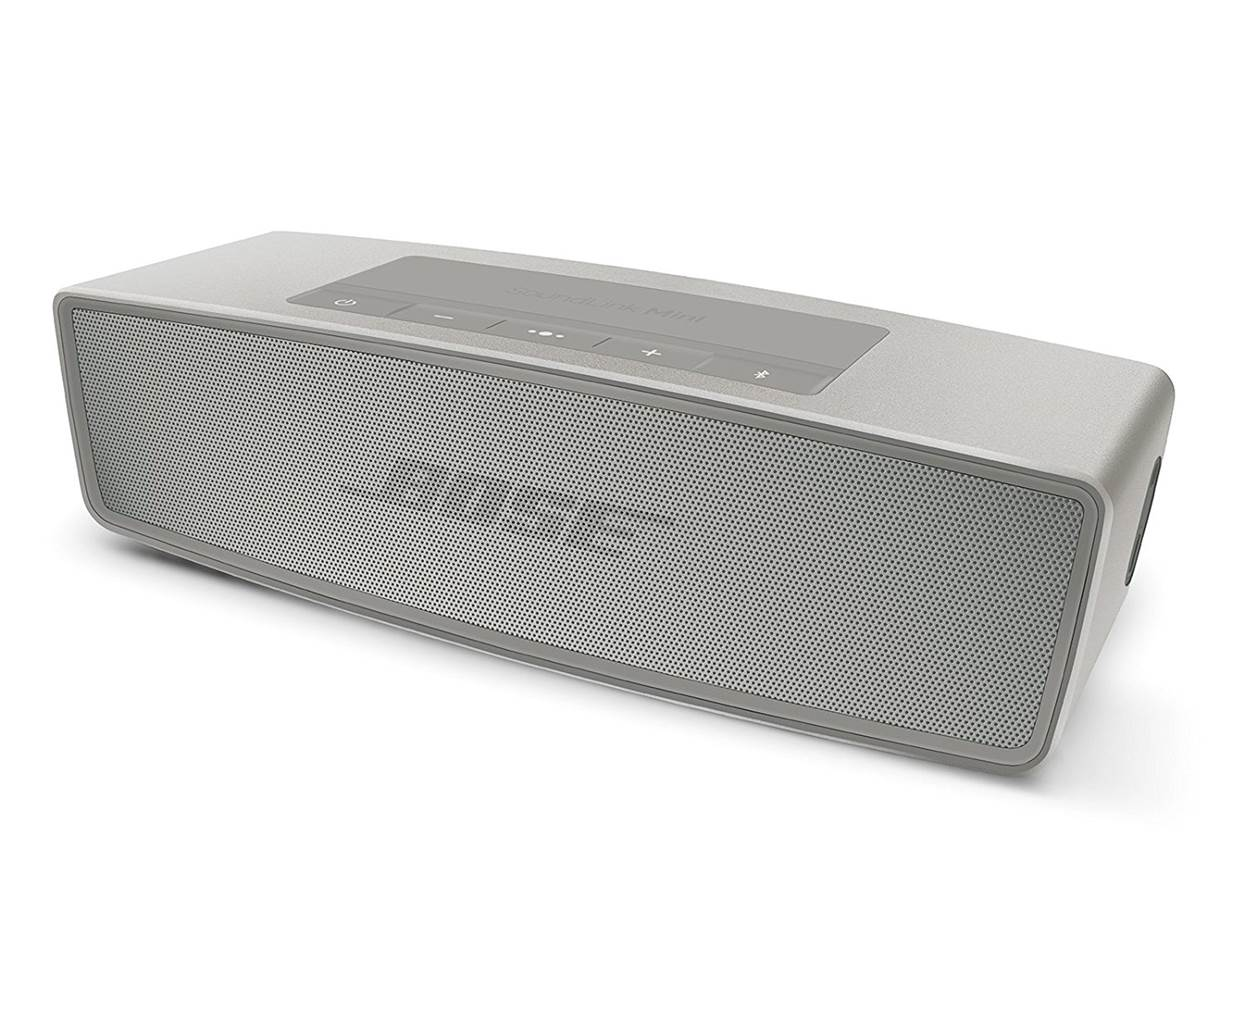 Bose SoundLink Mini II Portable Speaker